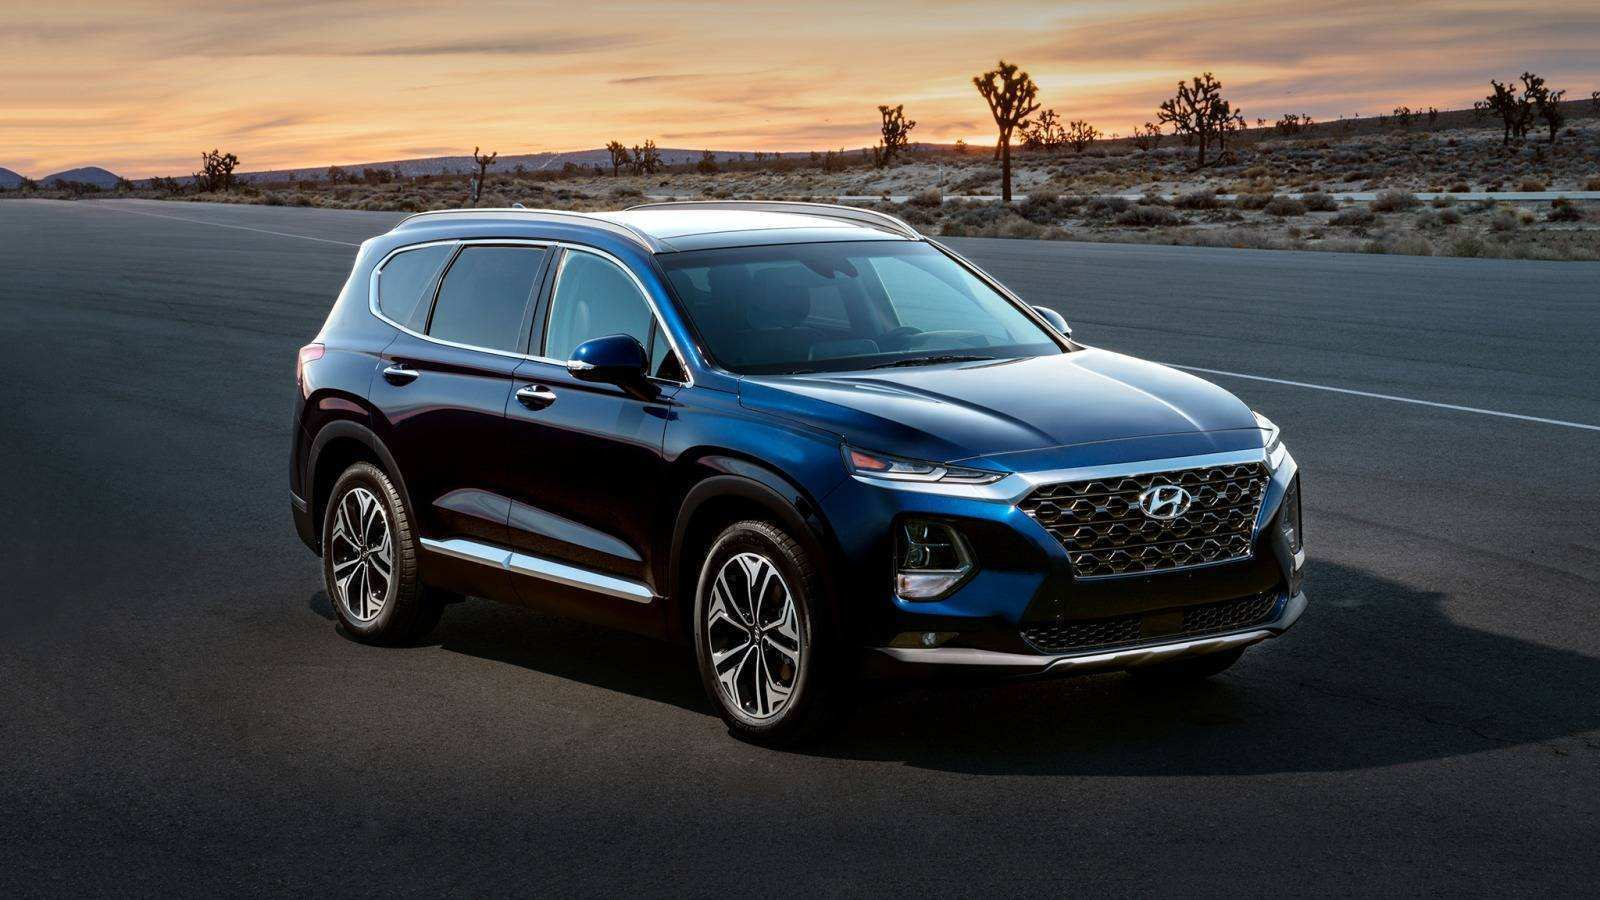 46 Best Review 2019 Hyundai Santa Fe Interior Speed Test for 2019 Hyundai Santa Fe Interior